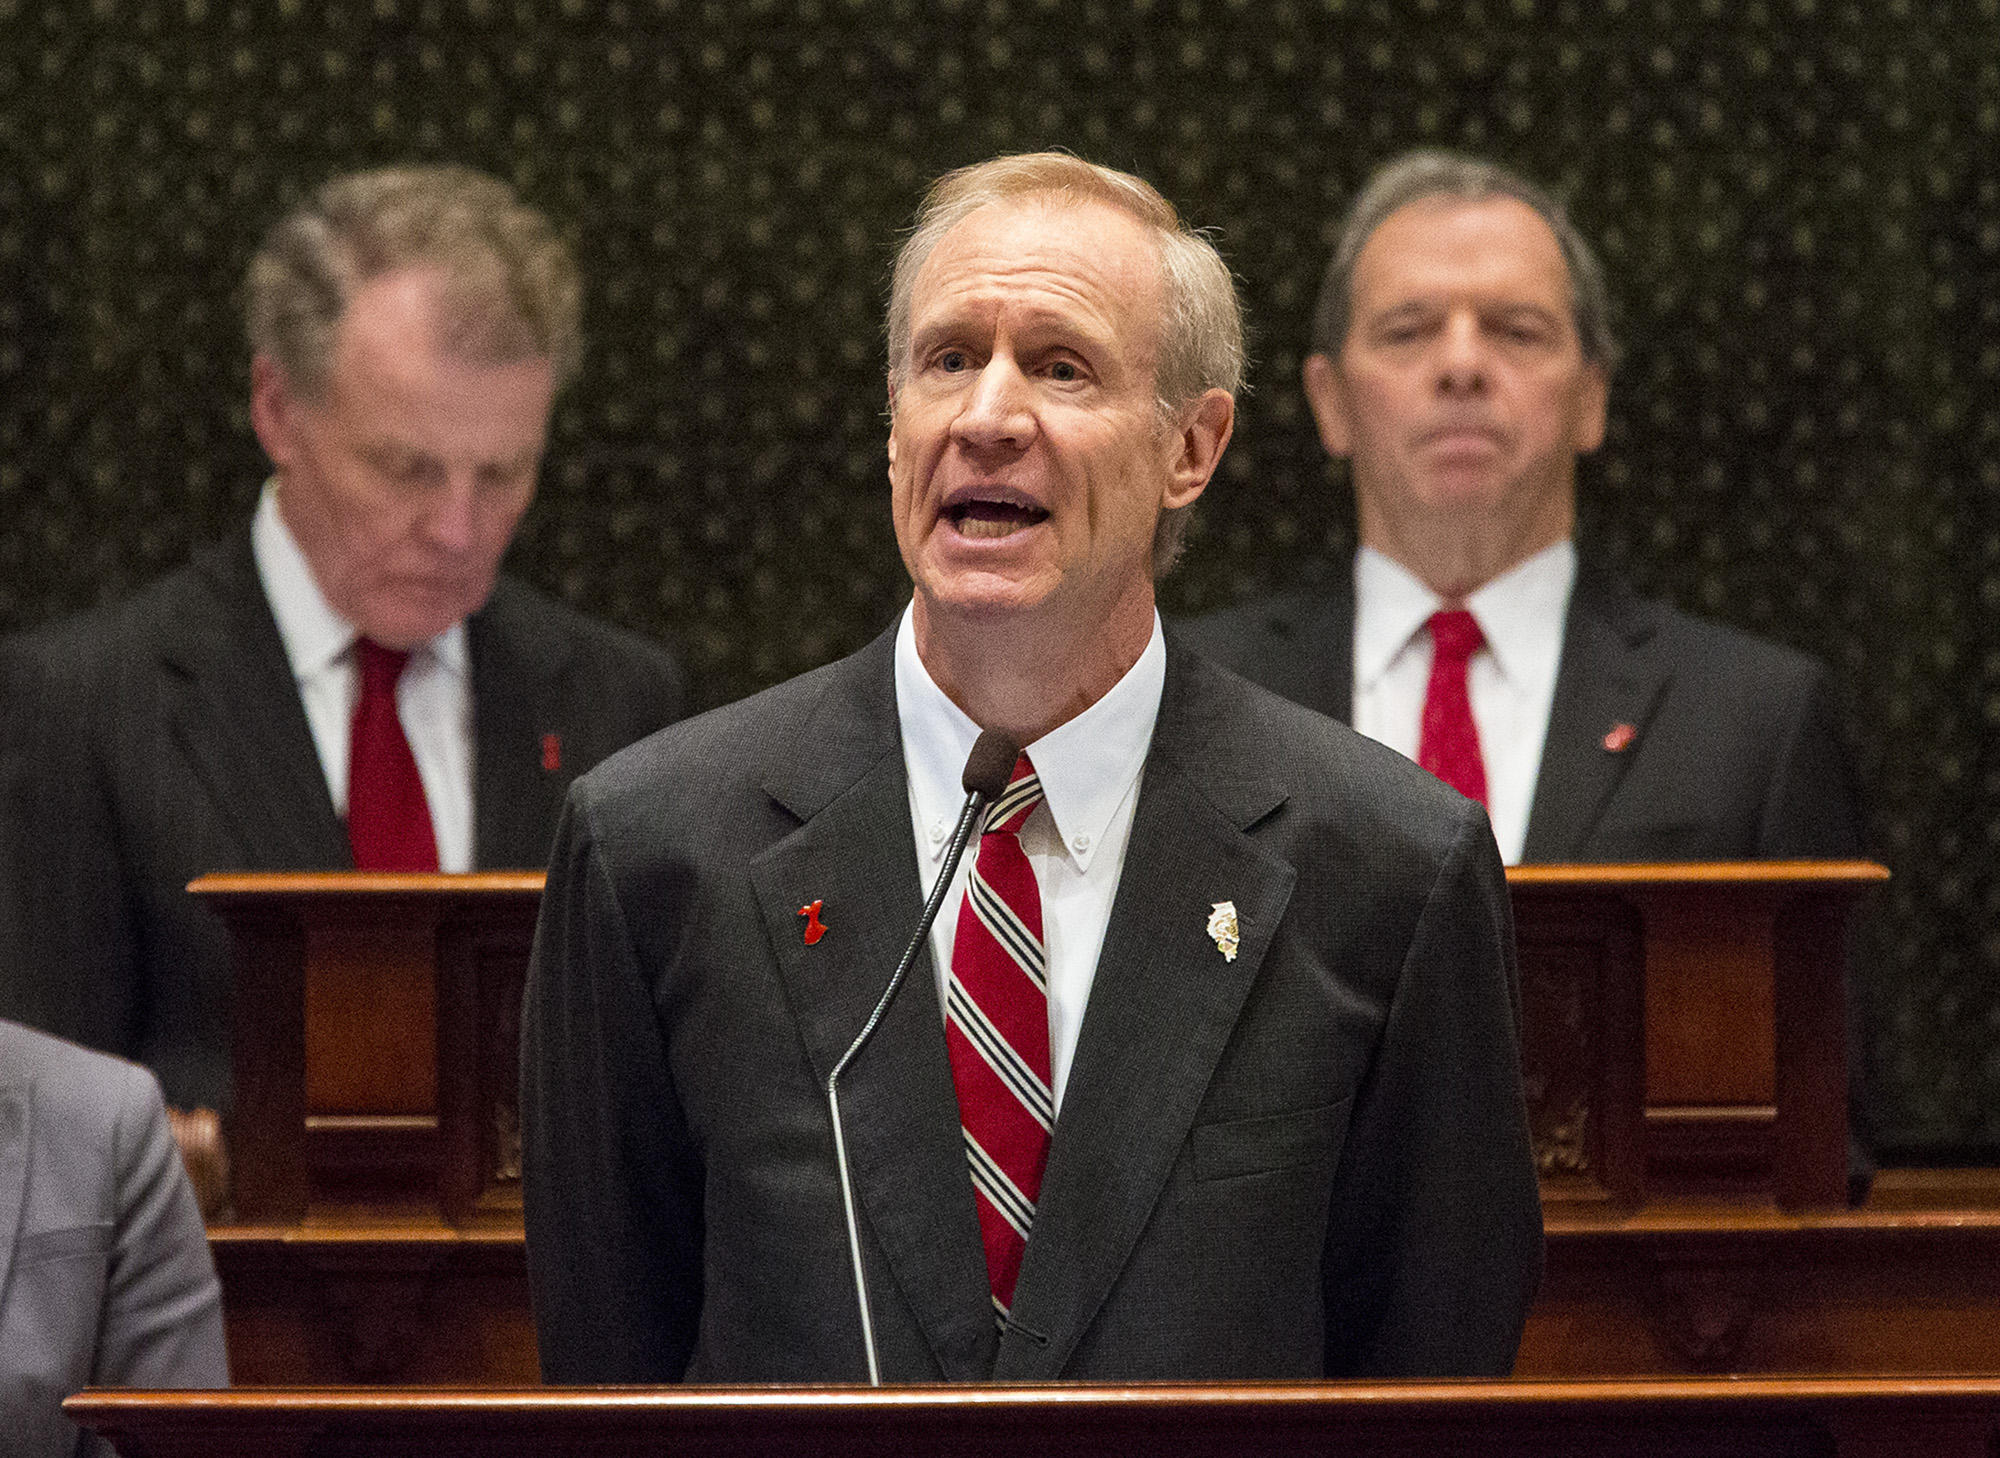 Local state senators react to Rauner's budget address